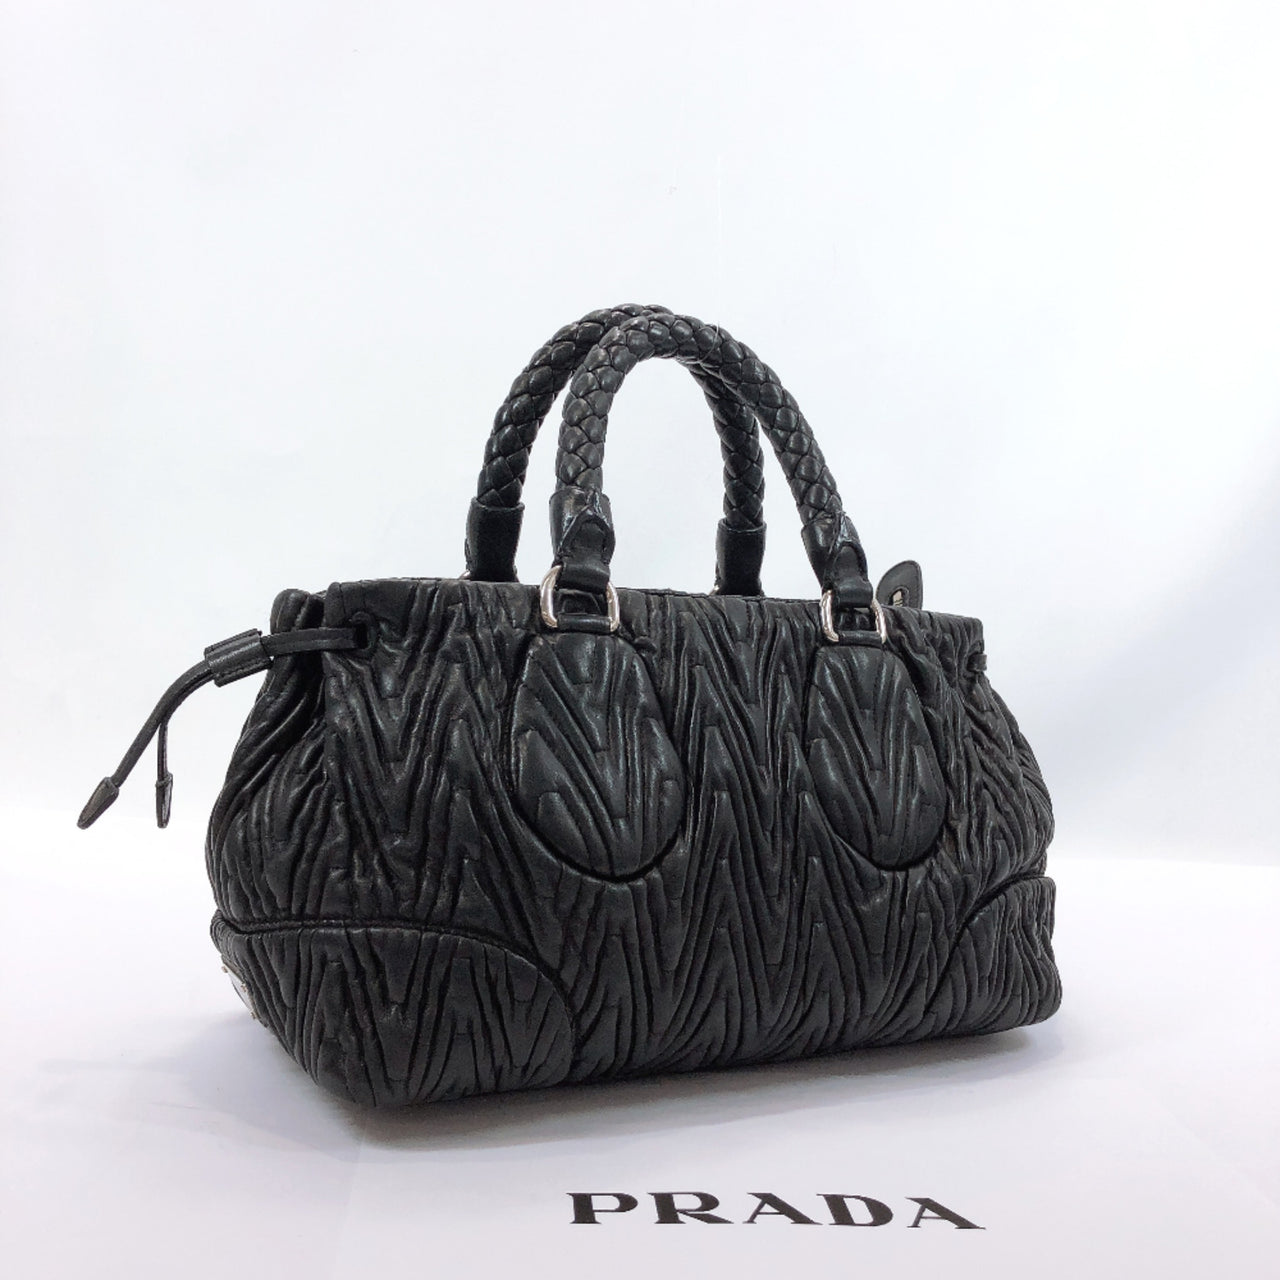 PRADA Tote Bag Materasse leather black Women Used